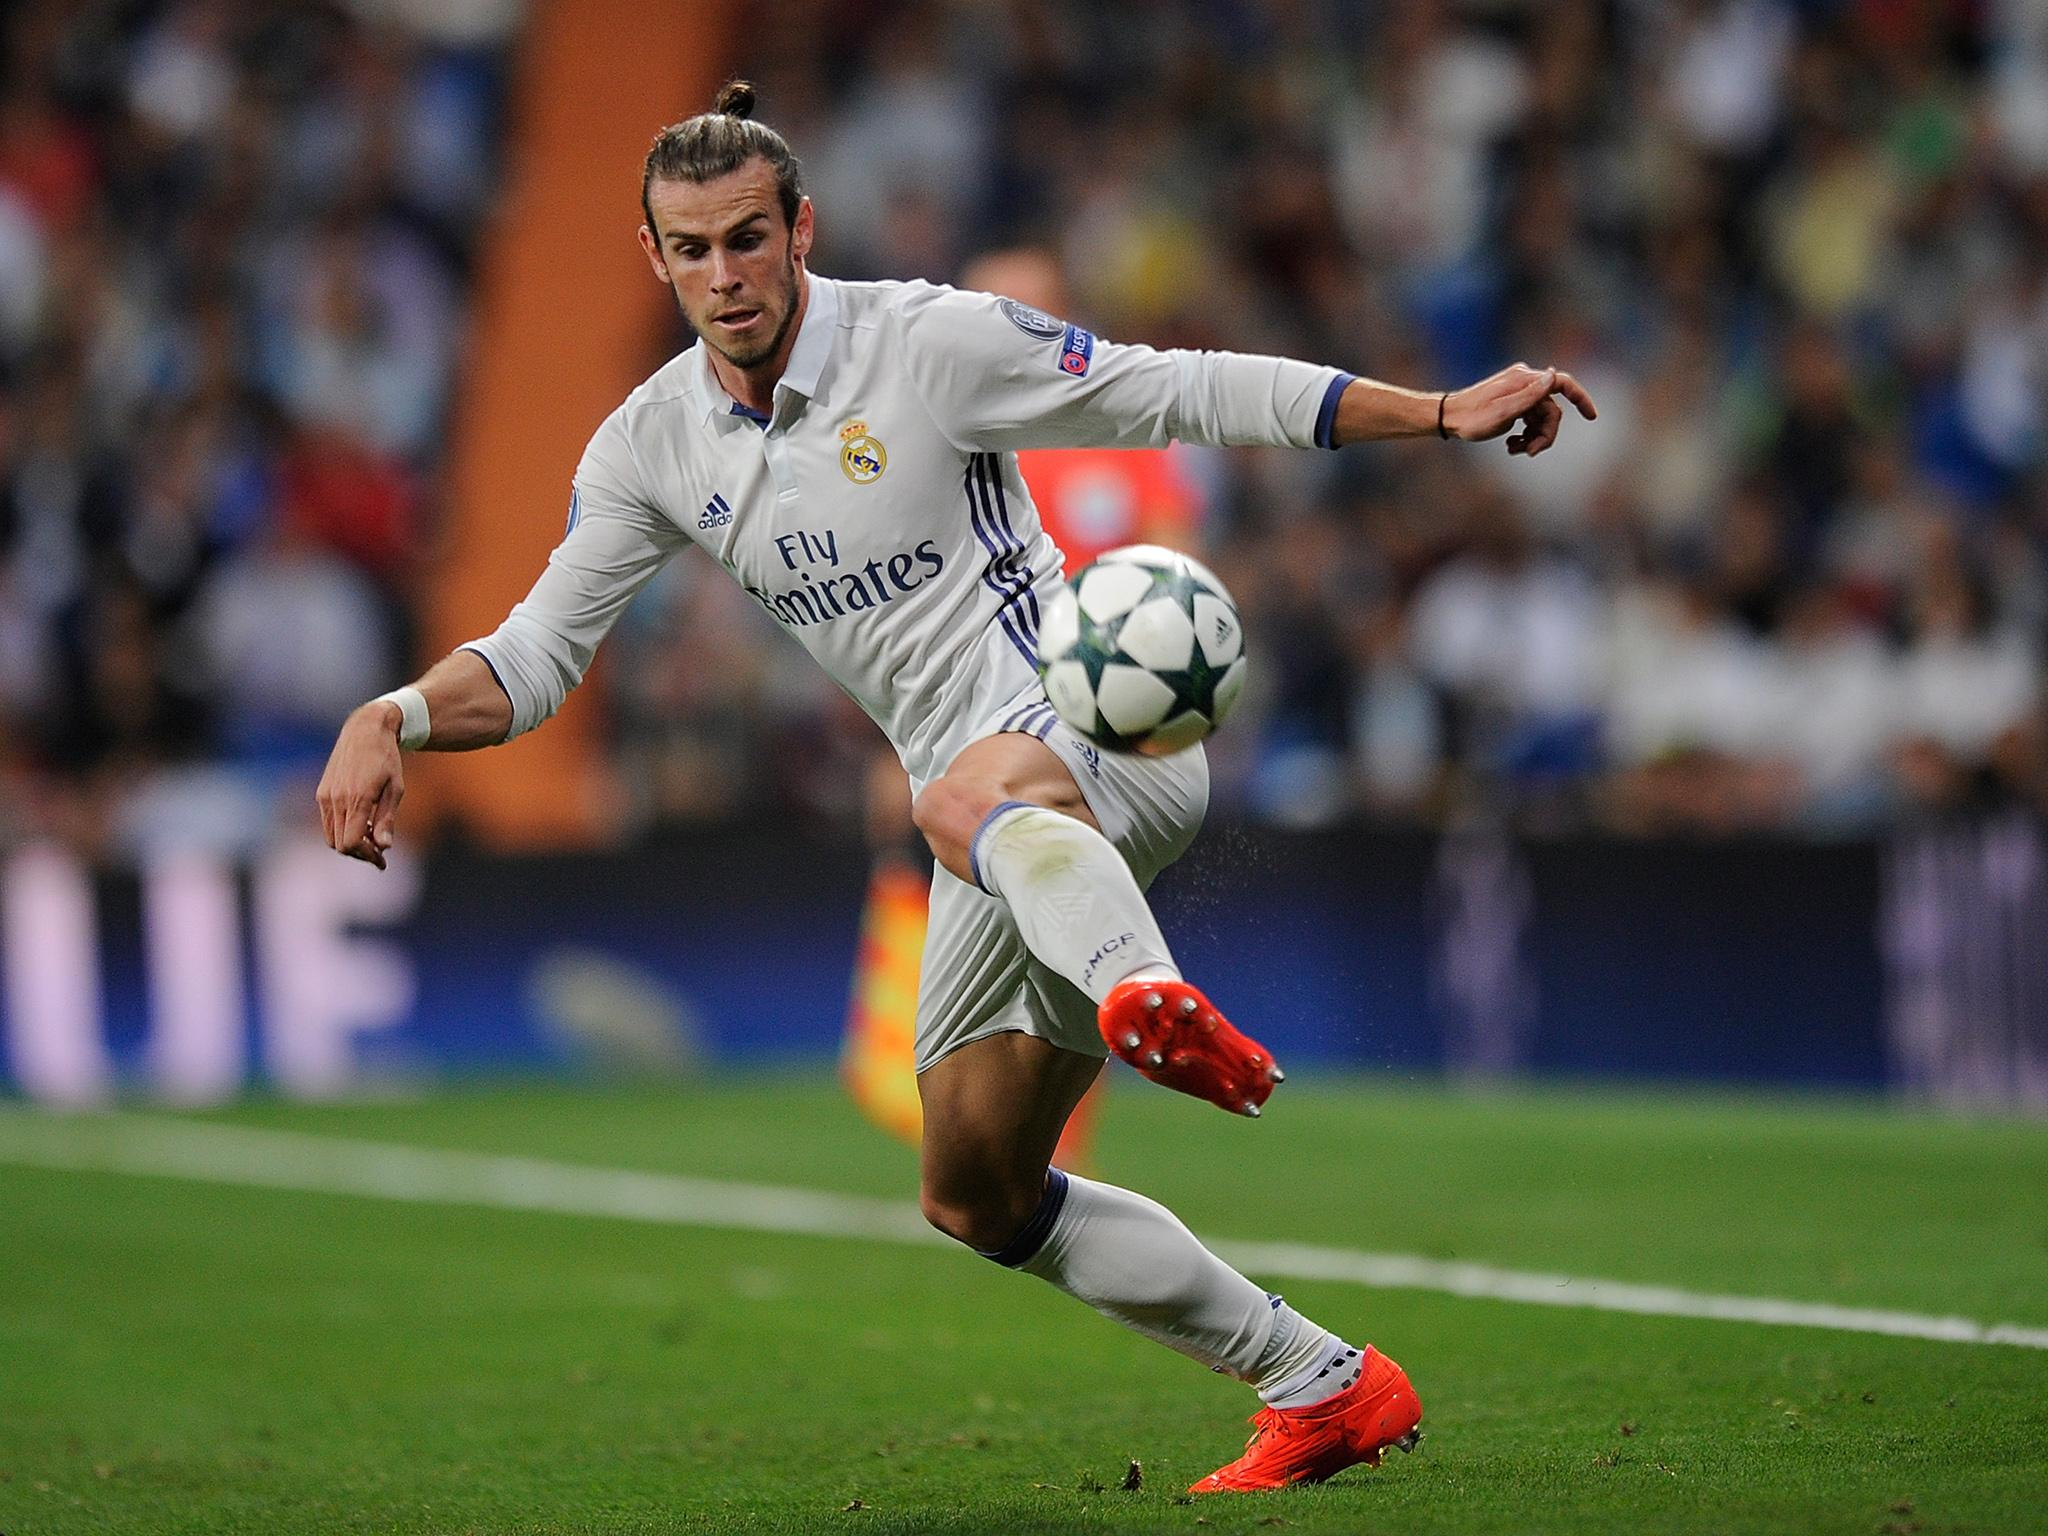 Did Gareth Bale and Florentino Perez make Zinedine Zidane quit Real Madrid